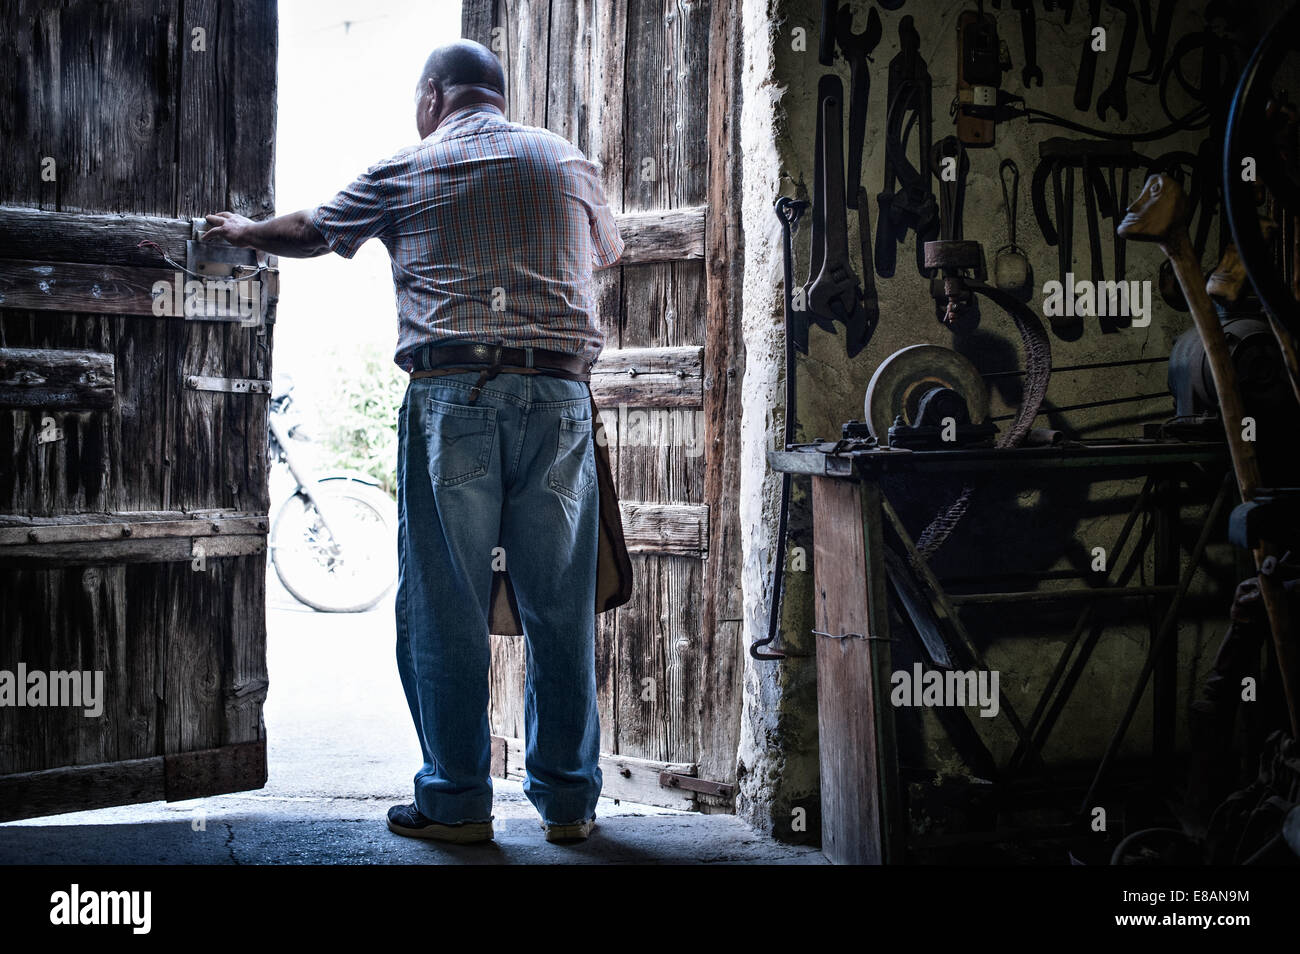 Rear view of senior male blacksmith in opening doors of traditional barn, Cagliari, Sardinia, Italy - Stock Image